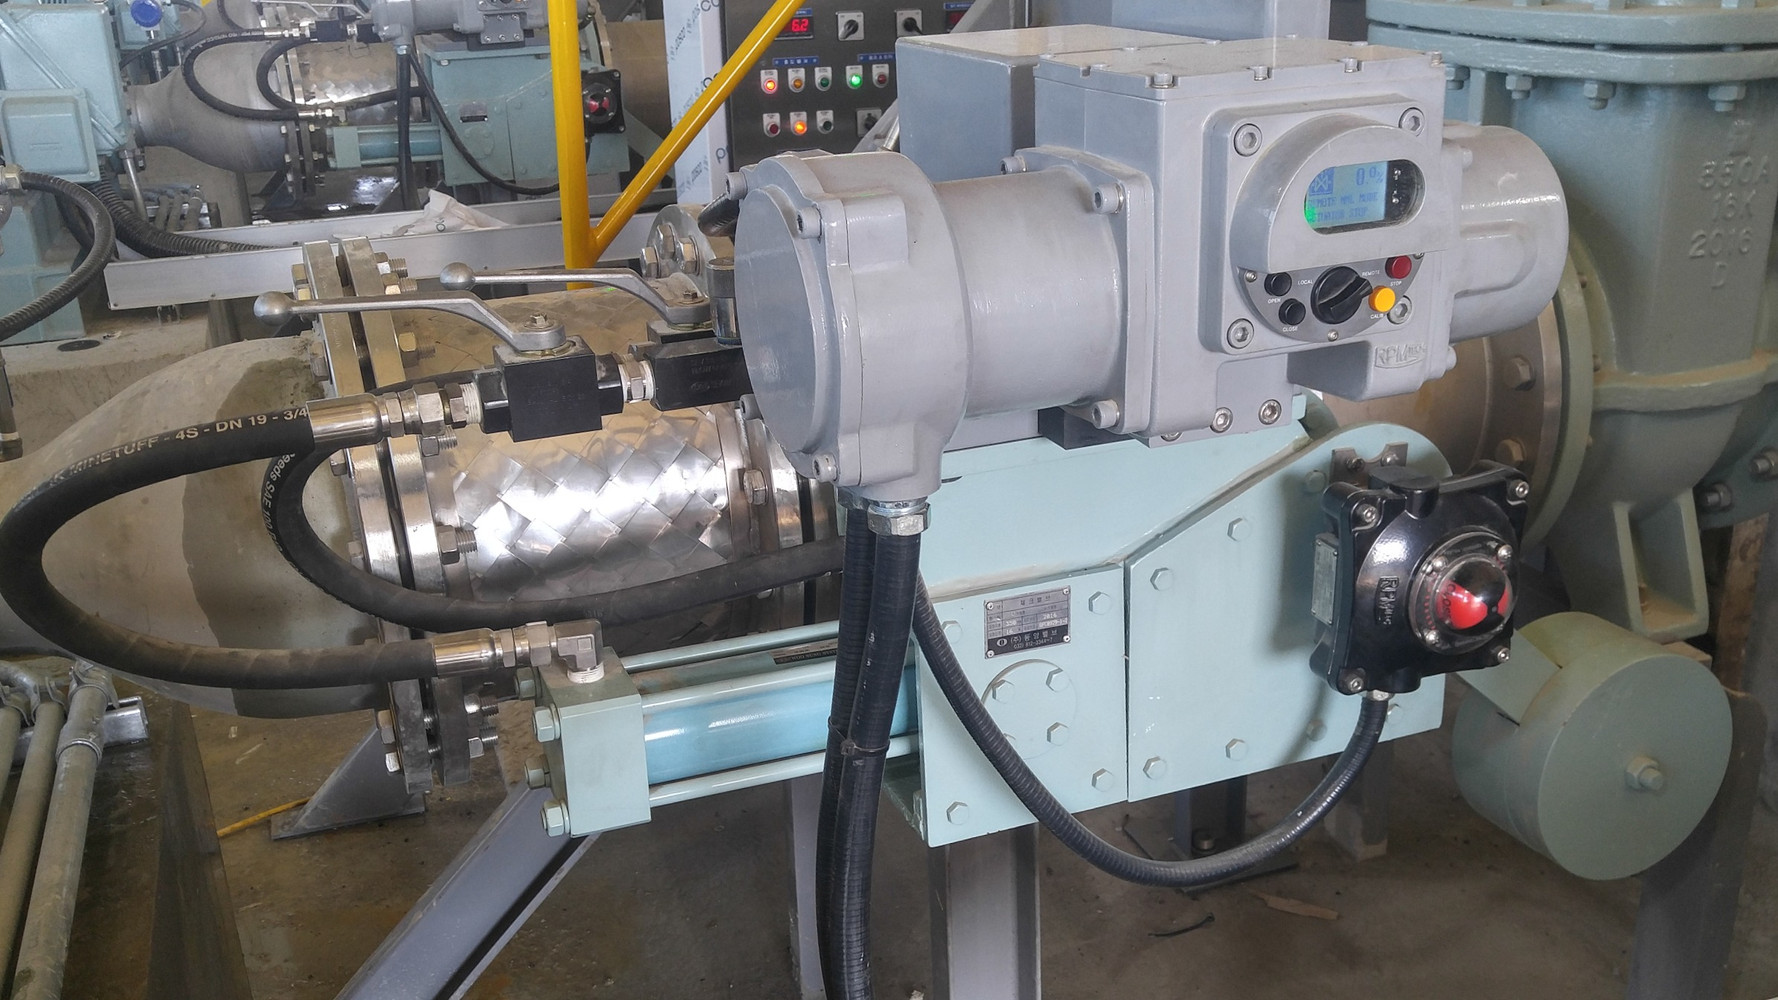 Close-up view of Pump Control Valve (PCV) System installed on Water Pump